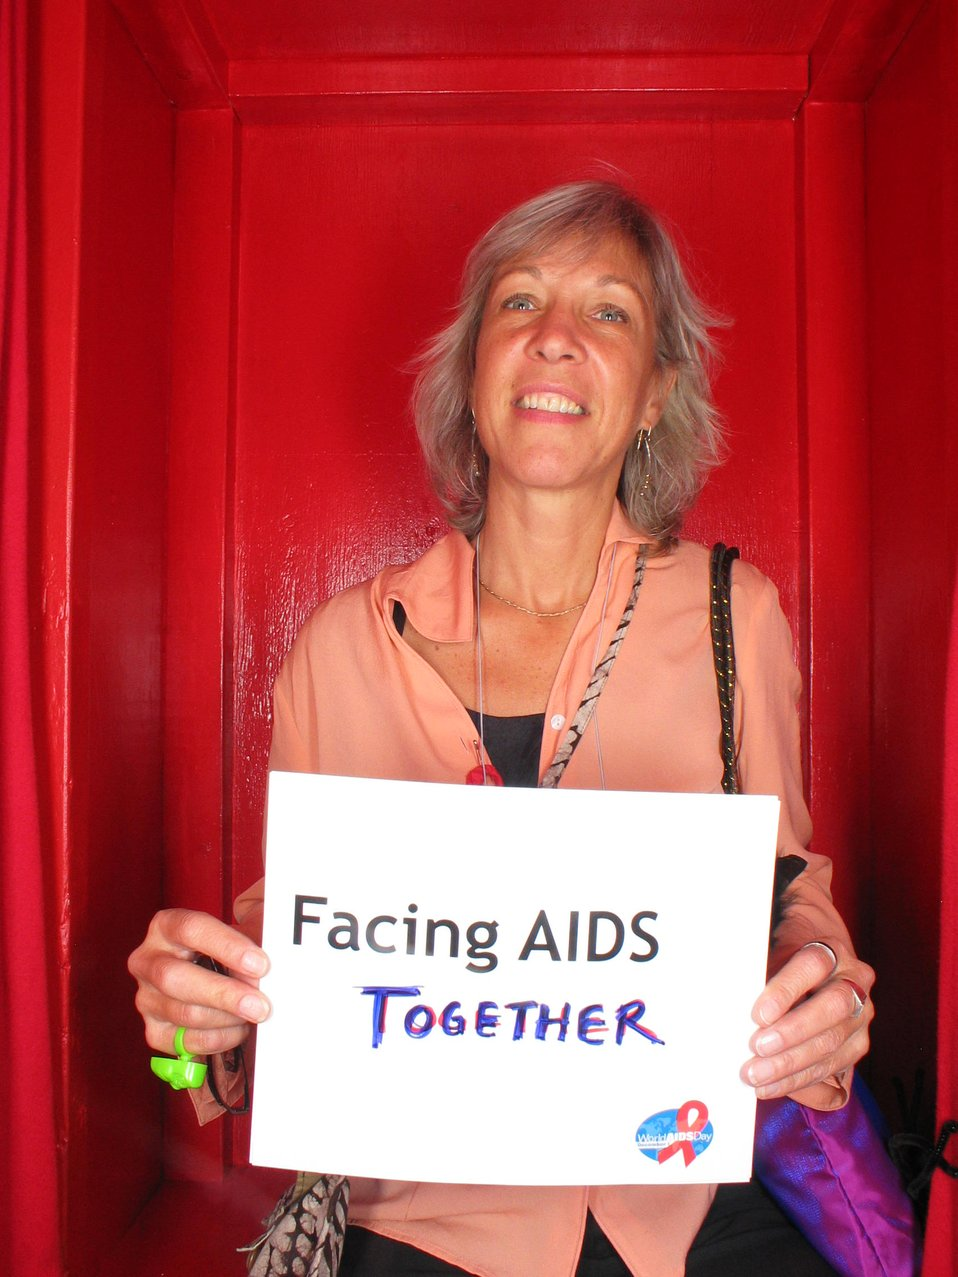 Facing AIDS together